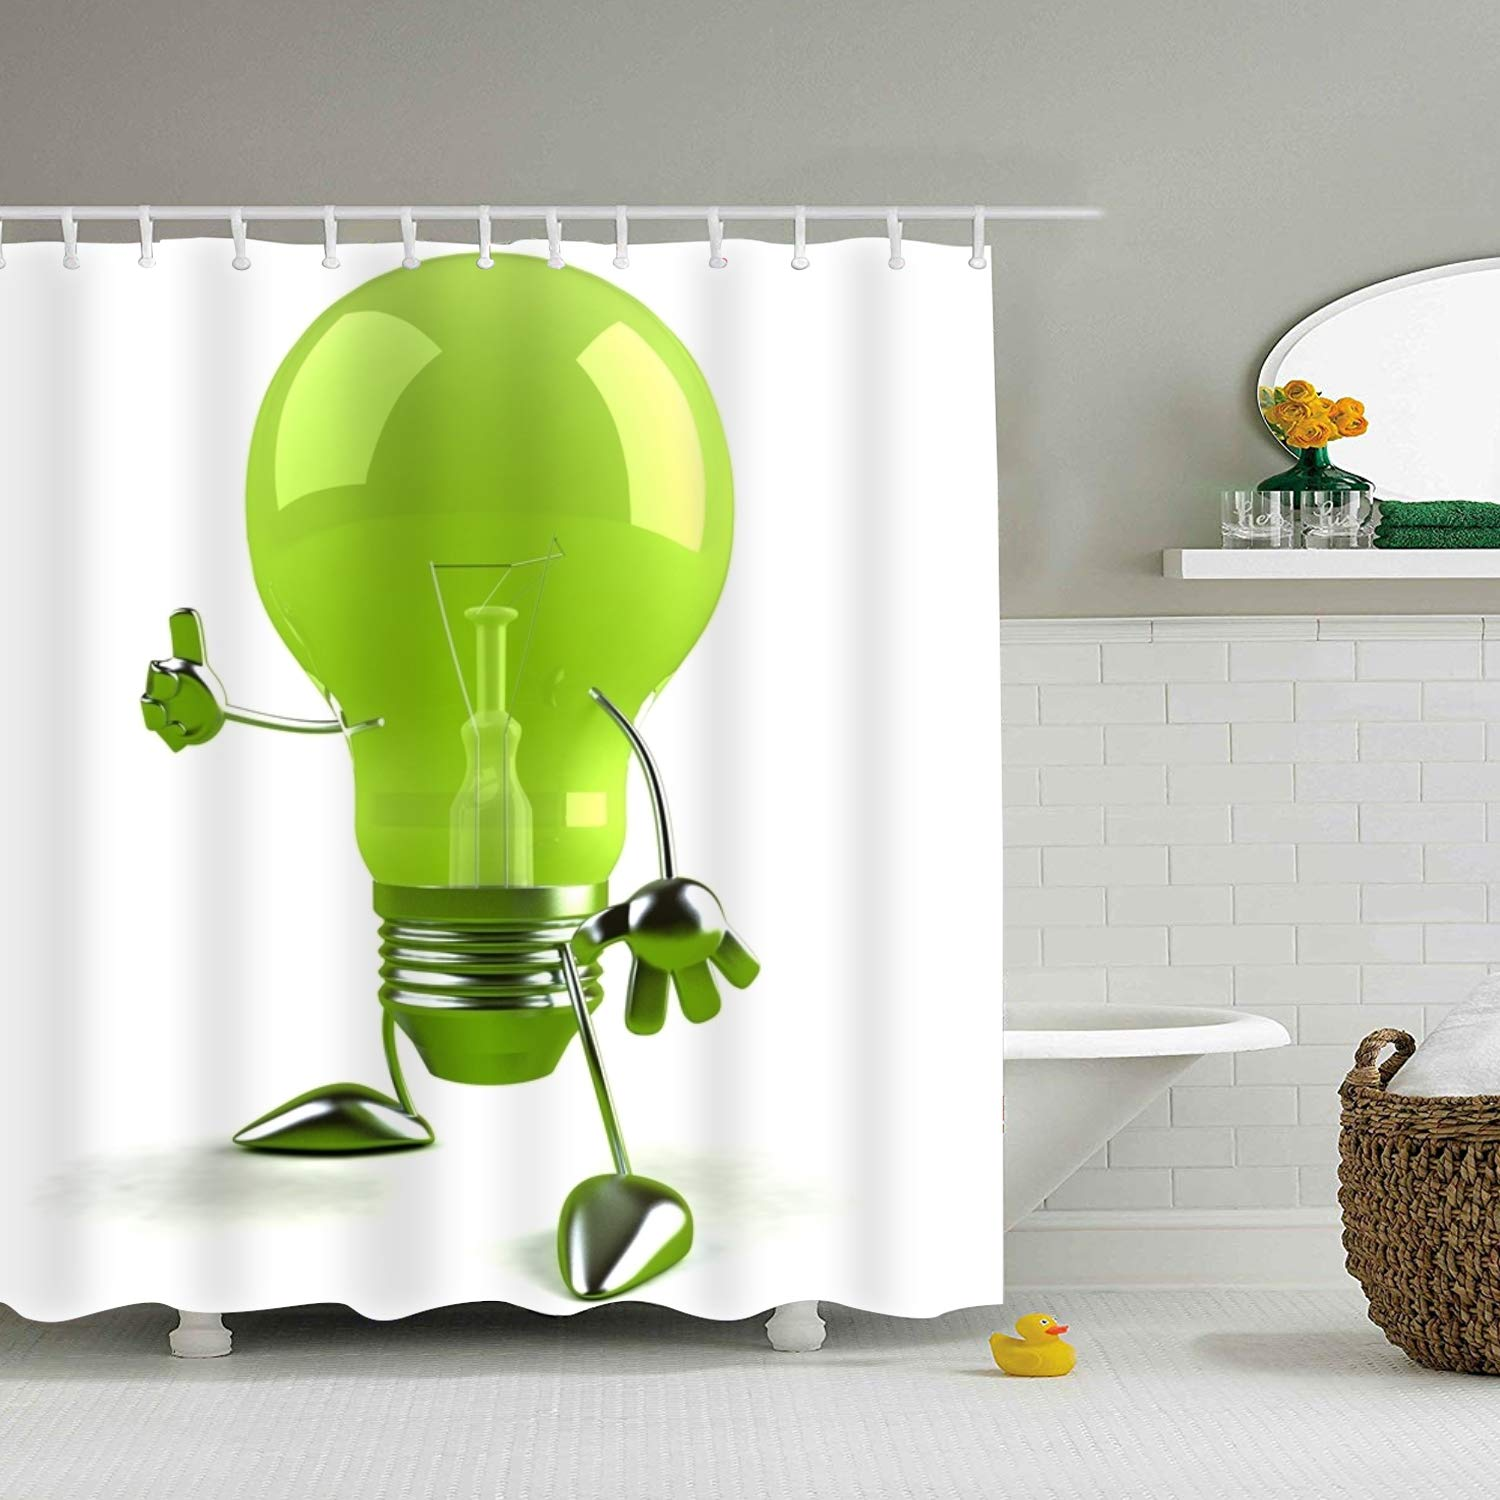 DOORM Creative Light Bulb Eco-Friendly Shower Curtain Water Repellent, Everyday Shower Curtain Liner Anti-Mildew